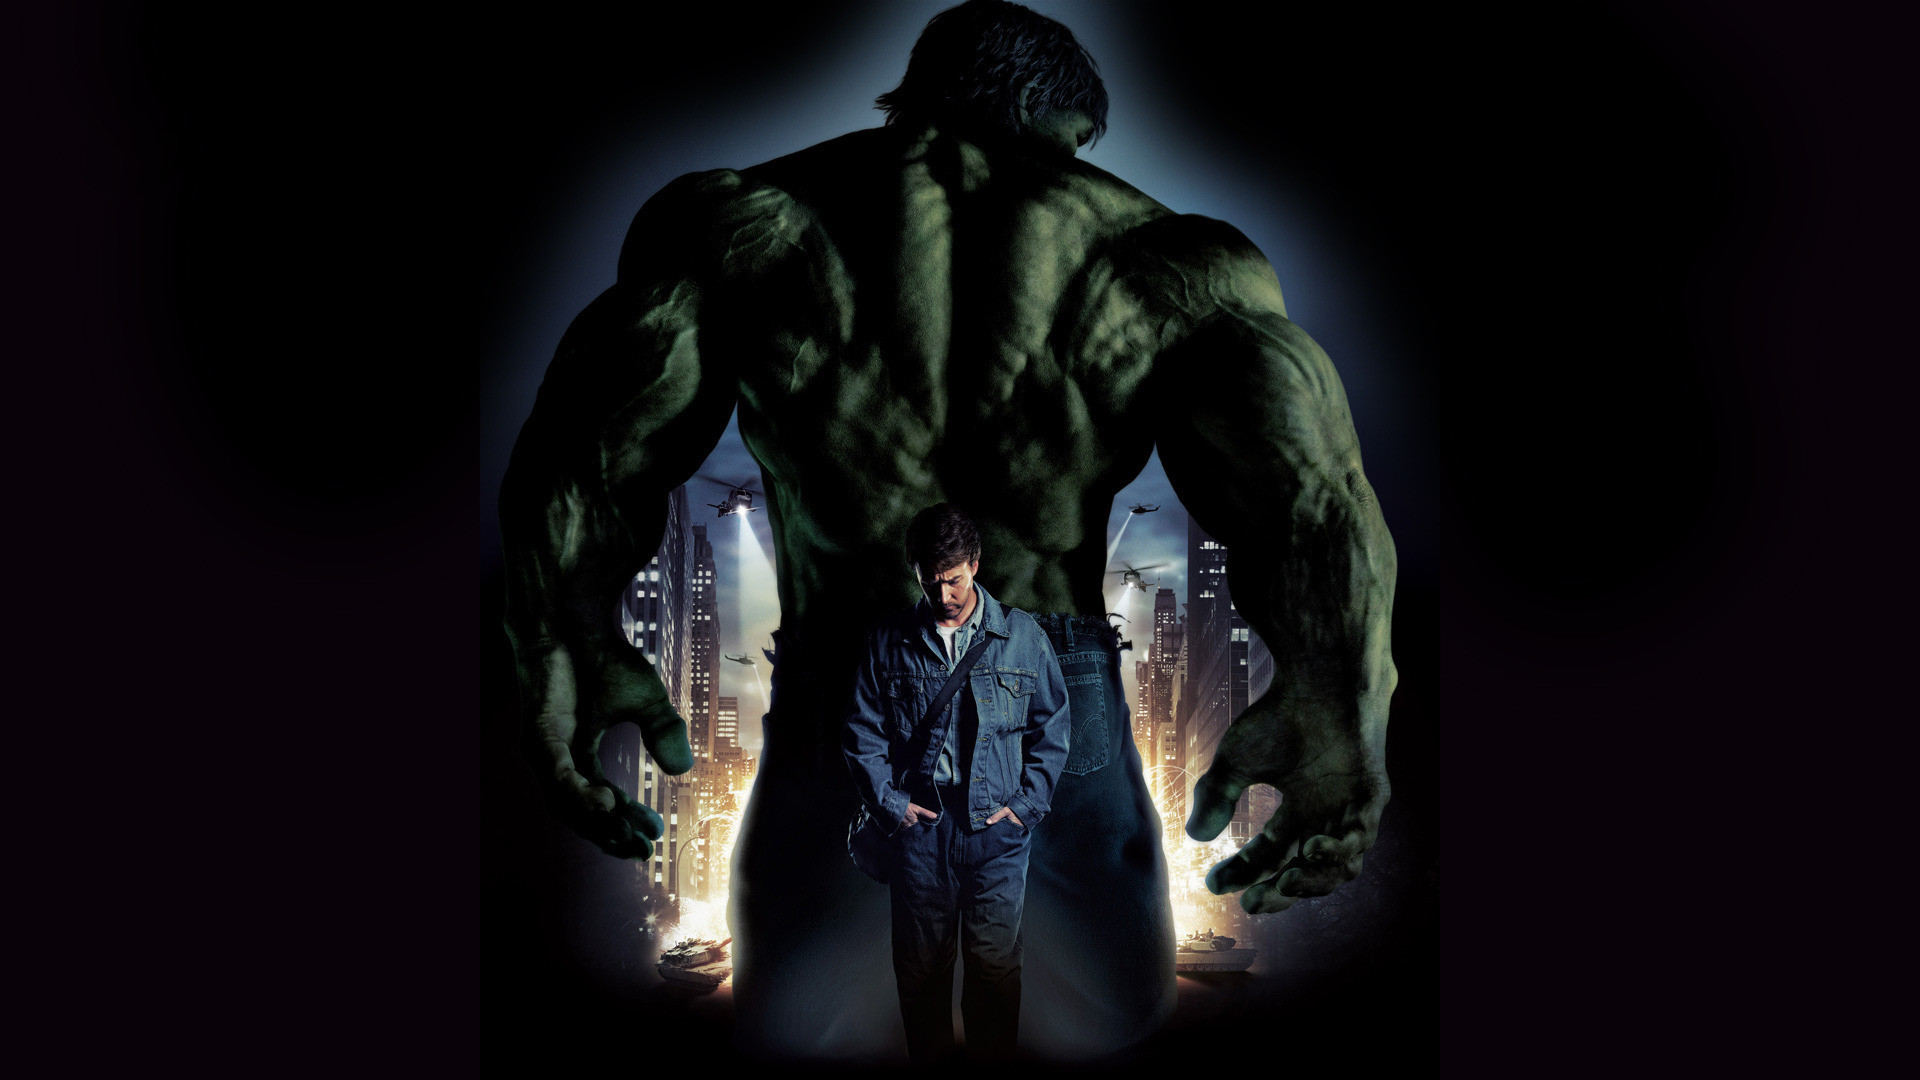 the incredible hulk wallpaper HD Desktop Wallpapers 4k HD